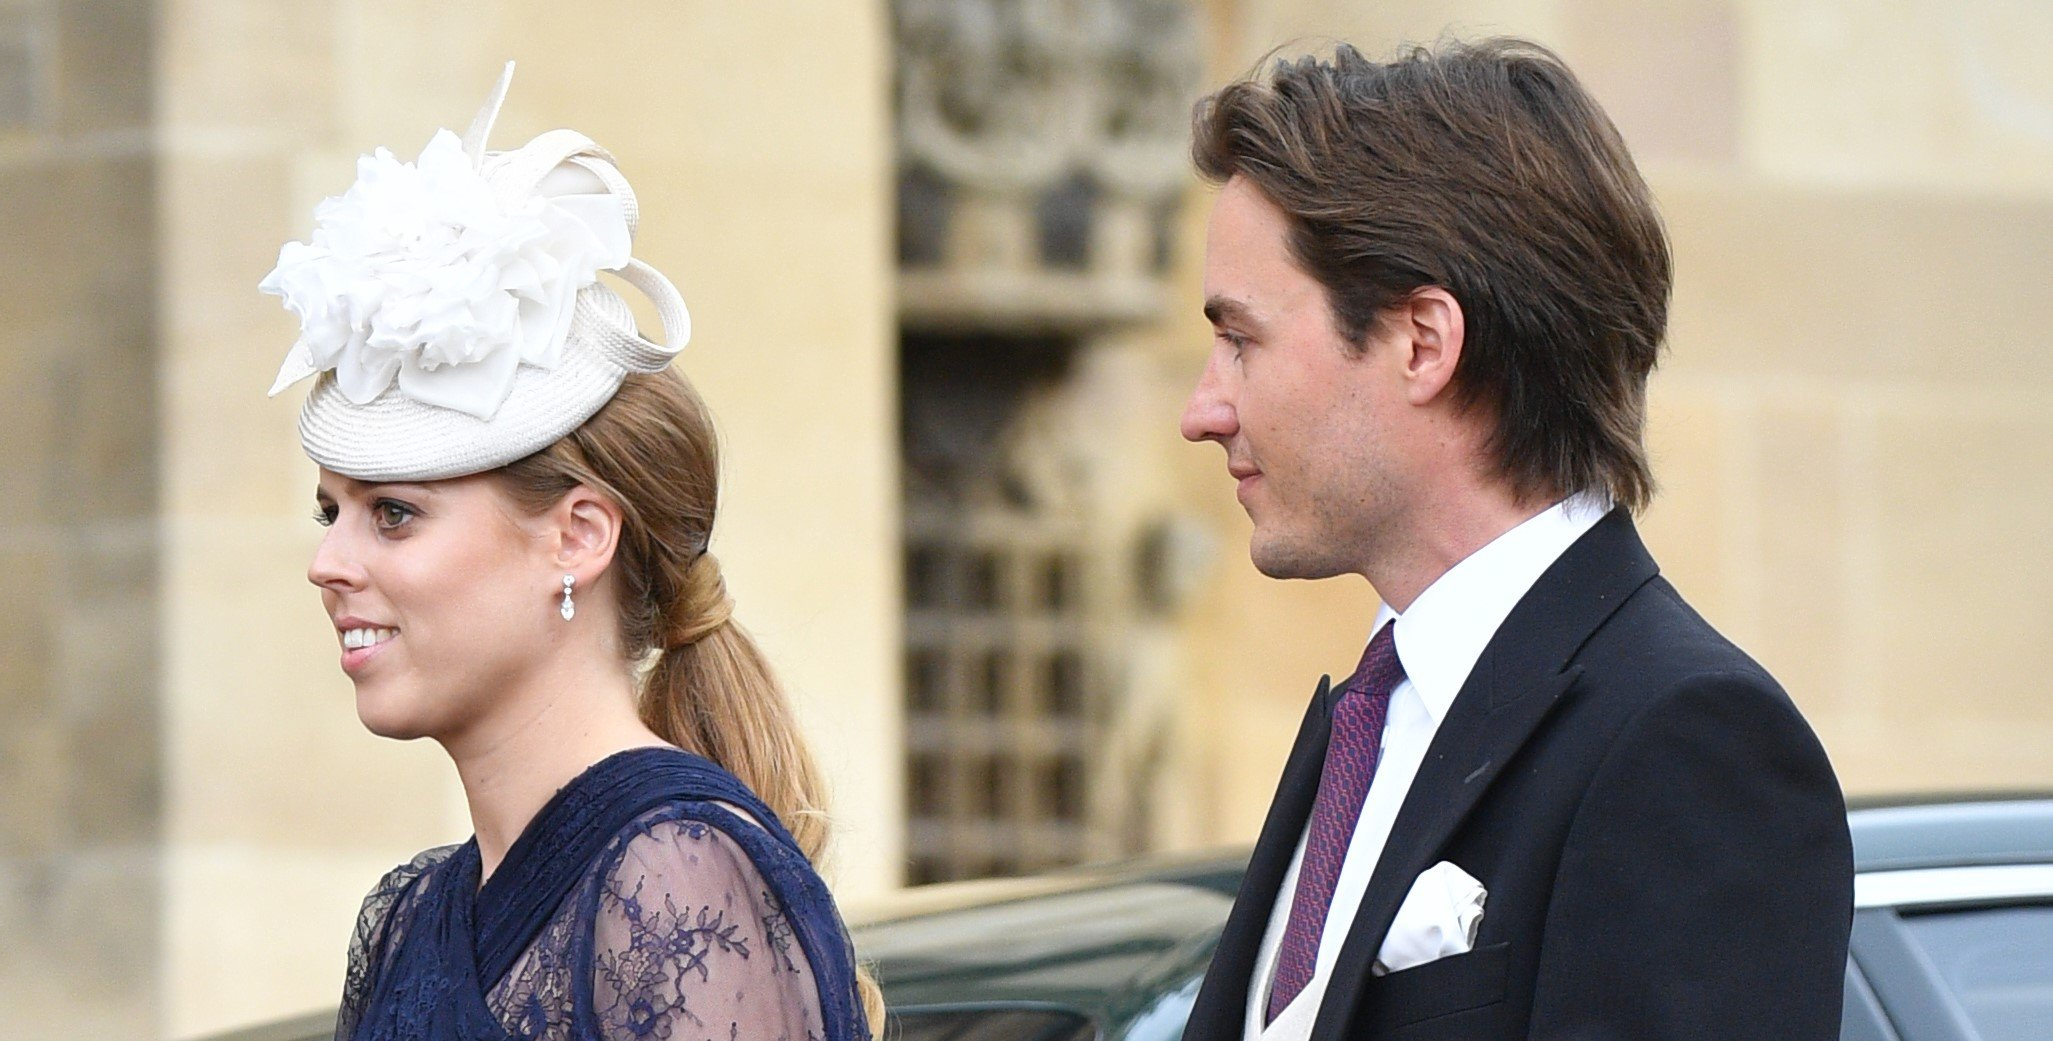 Princess Beatrice makes first royal appearance with boyfriend Edoardo Mapelli Mozzi